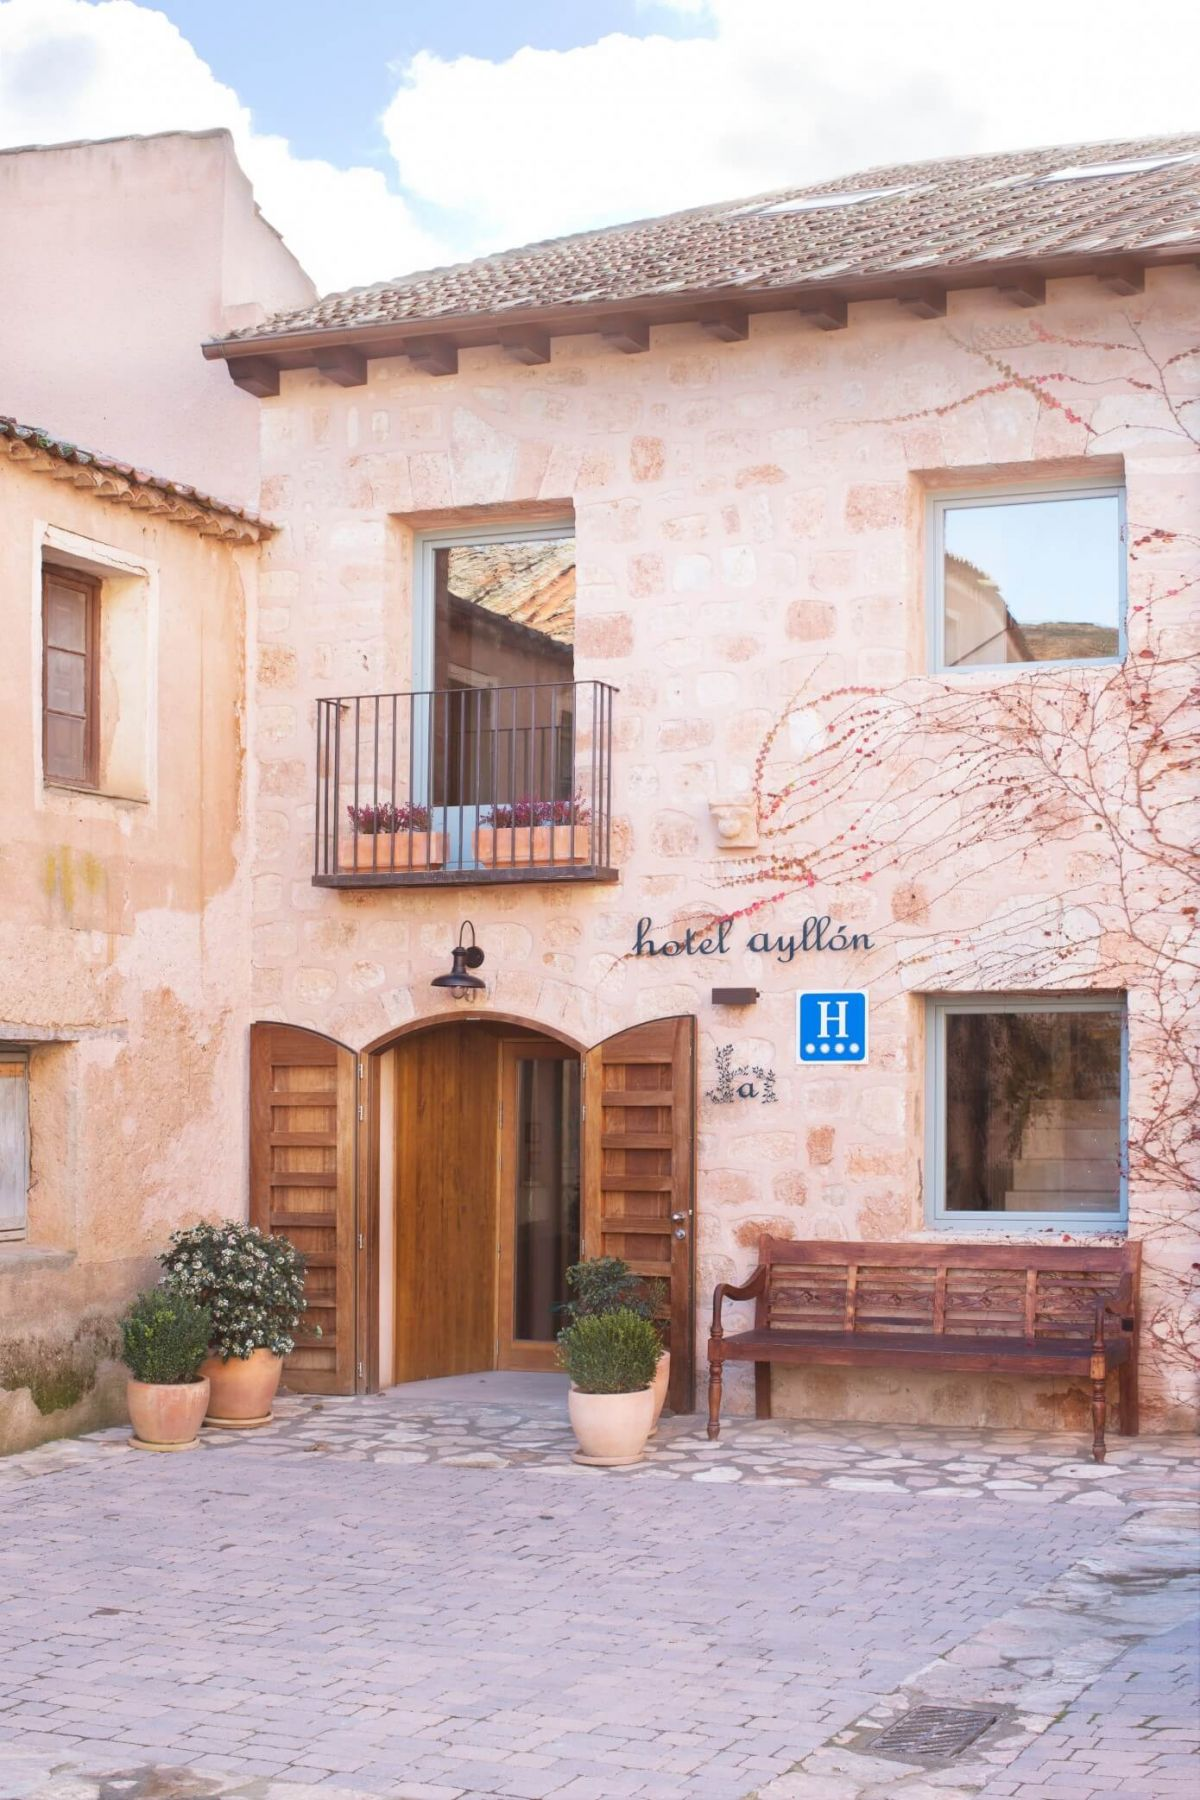 A contemporary reconstruction of the Hotel in rustic style and medieval Spanish architecture surrounding